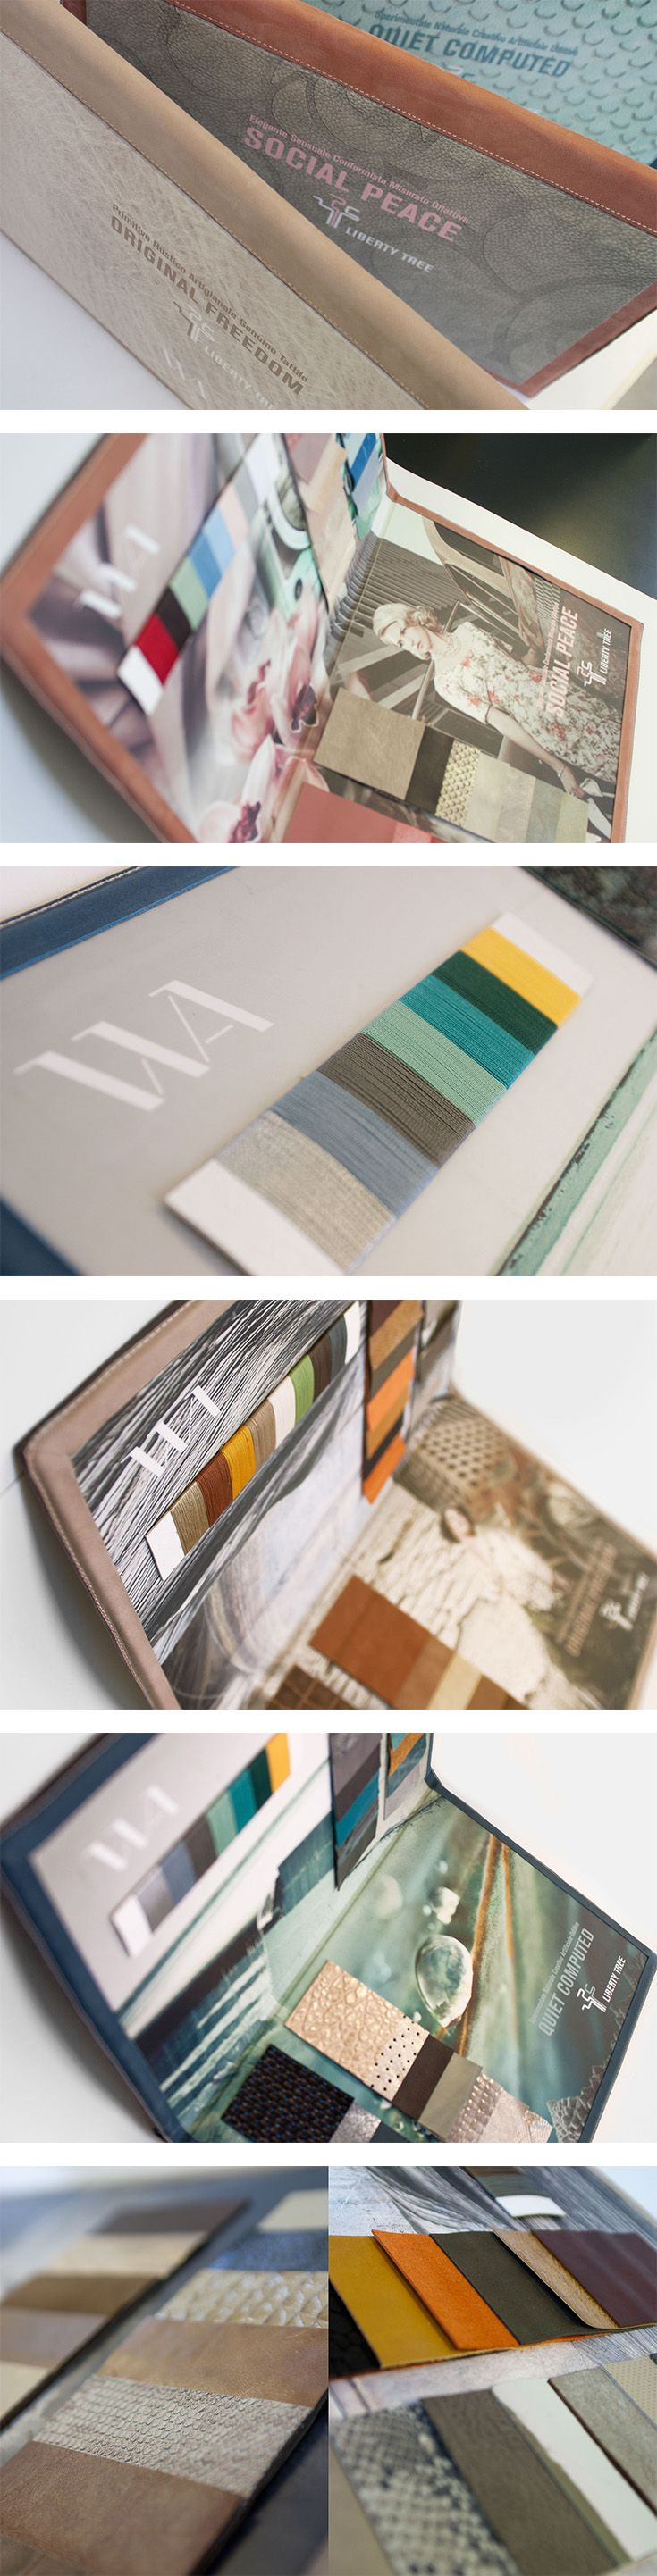 Packaging per Weare, un progetto #effADV - Weare packaging, effADV project - #packaging #book #colors #fabrics #samples